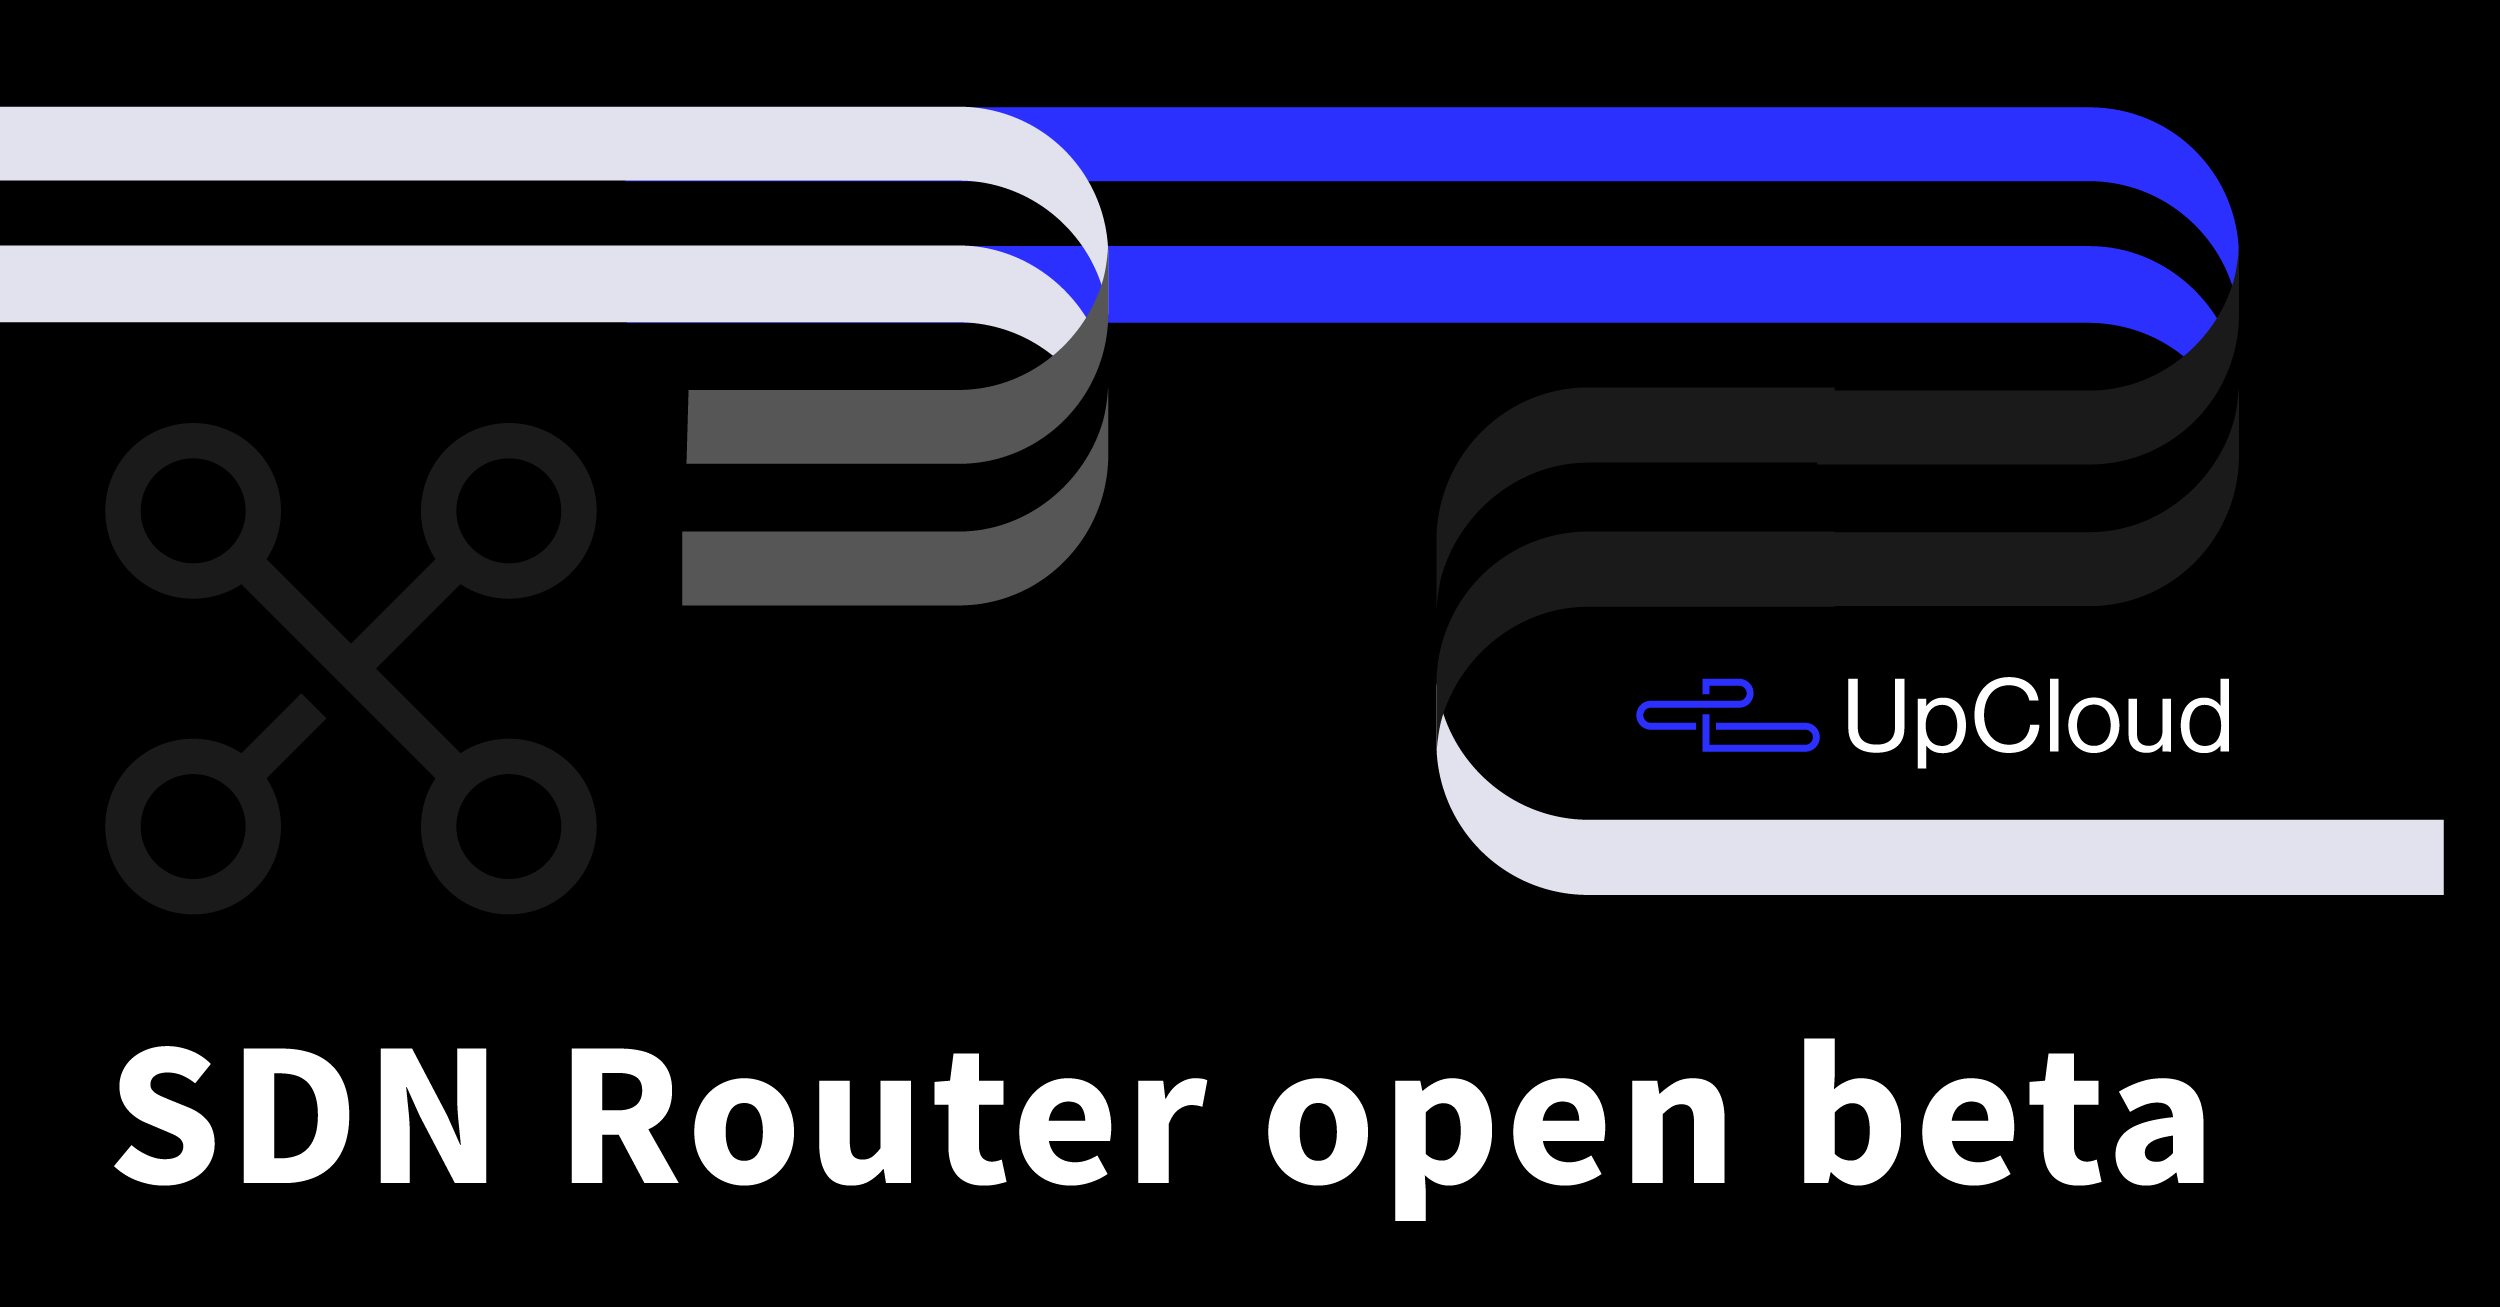 SDN Router open beta